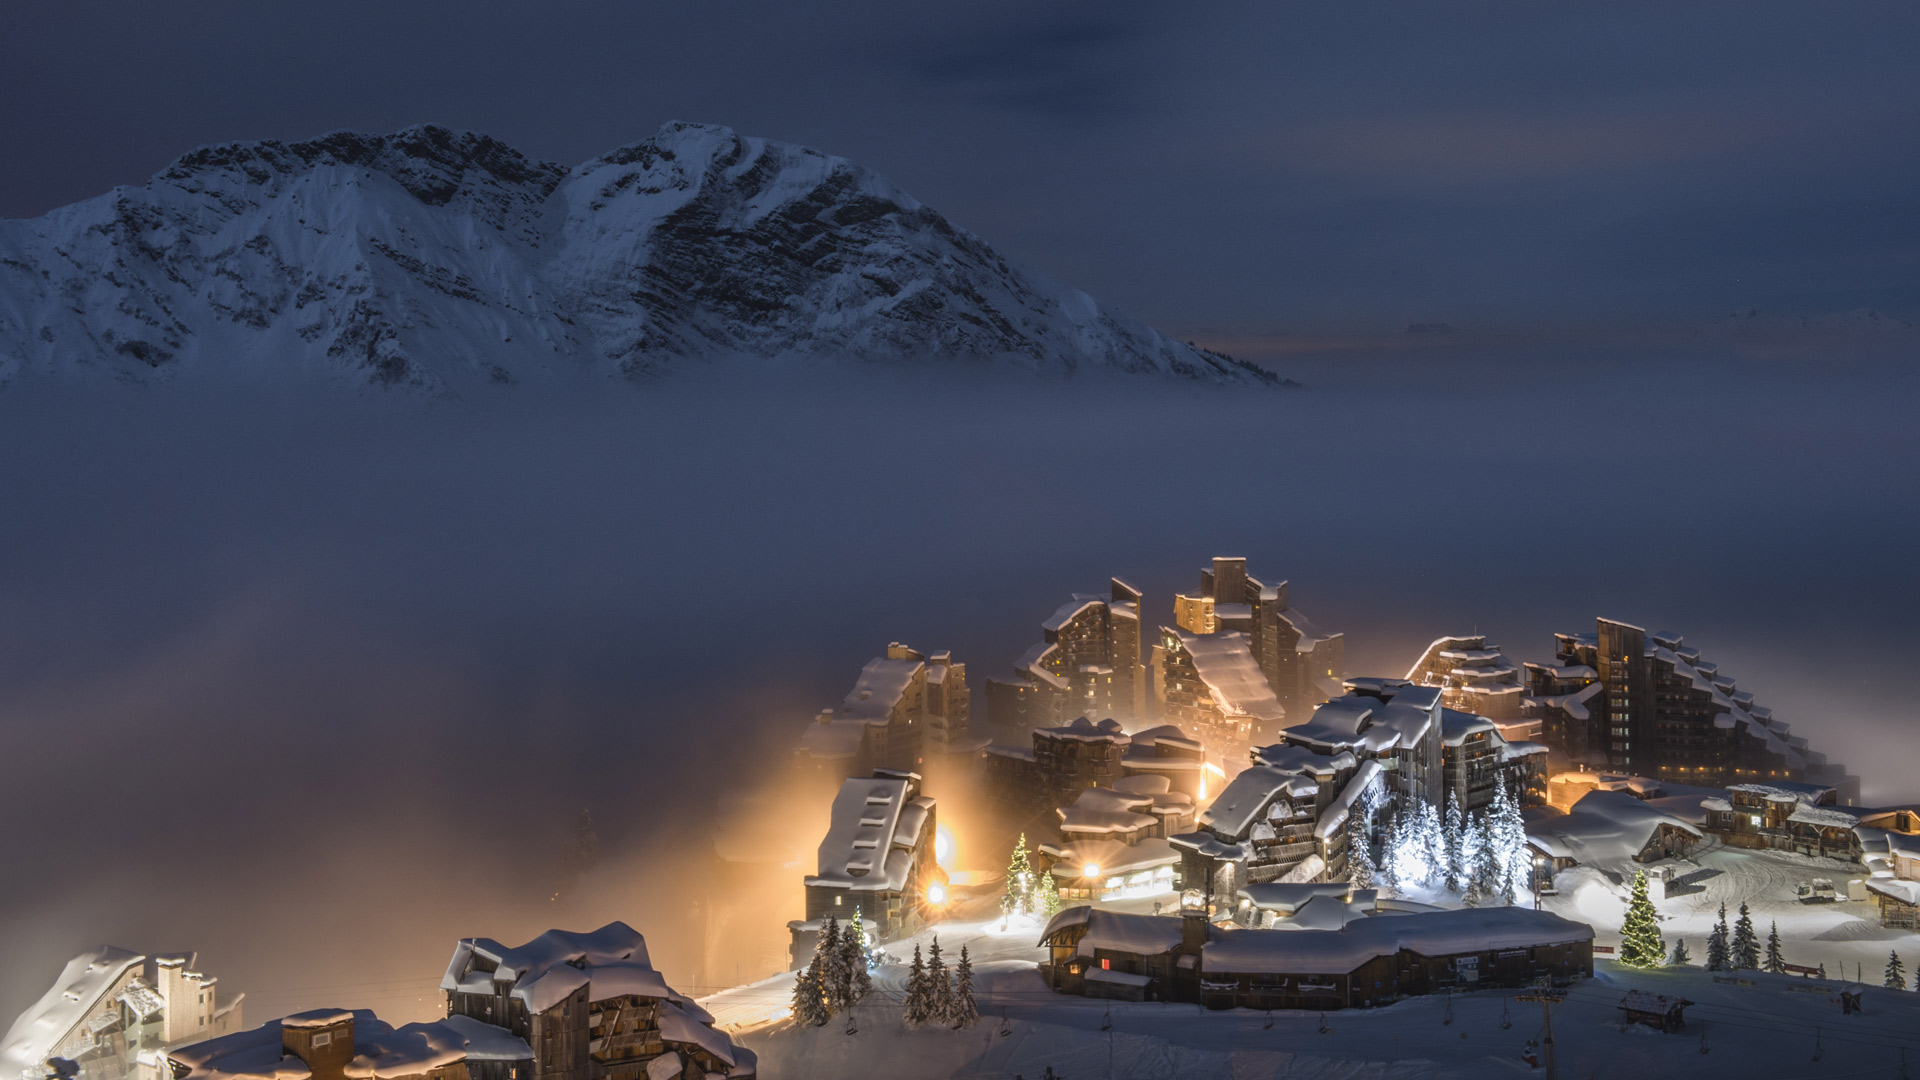 Avoriaz ski resort at night, Haute-Savoie, Rhône-Alpes, France (© Dylan H. Brown/Aurora Photos)